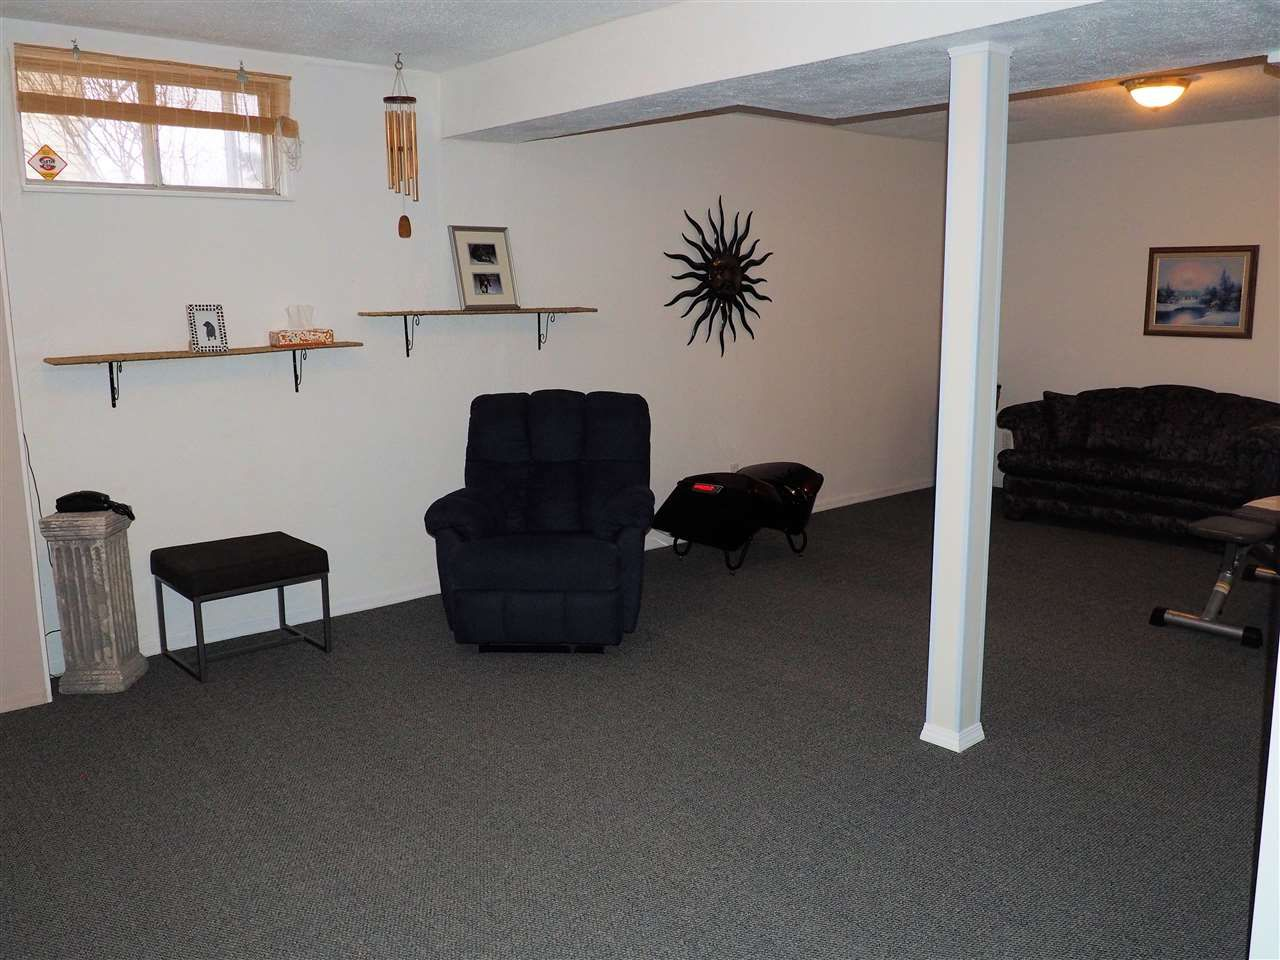 Photo 12: Photos: 4645 ROBSON Avenue in Prince George: Foothills House for sale (PG City West (Zone 71))  : MLS®# R2143048